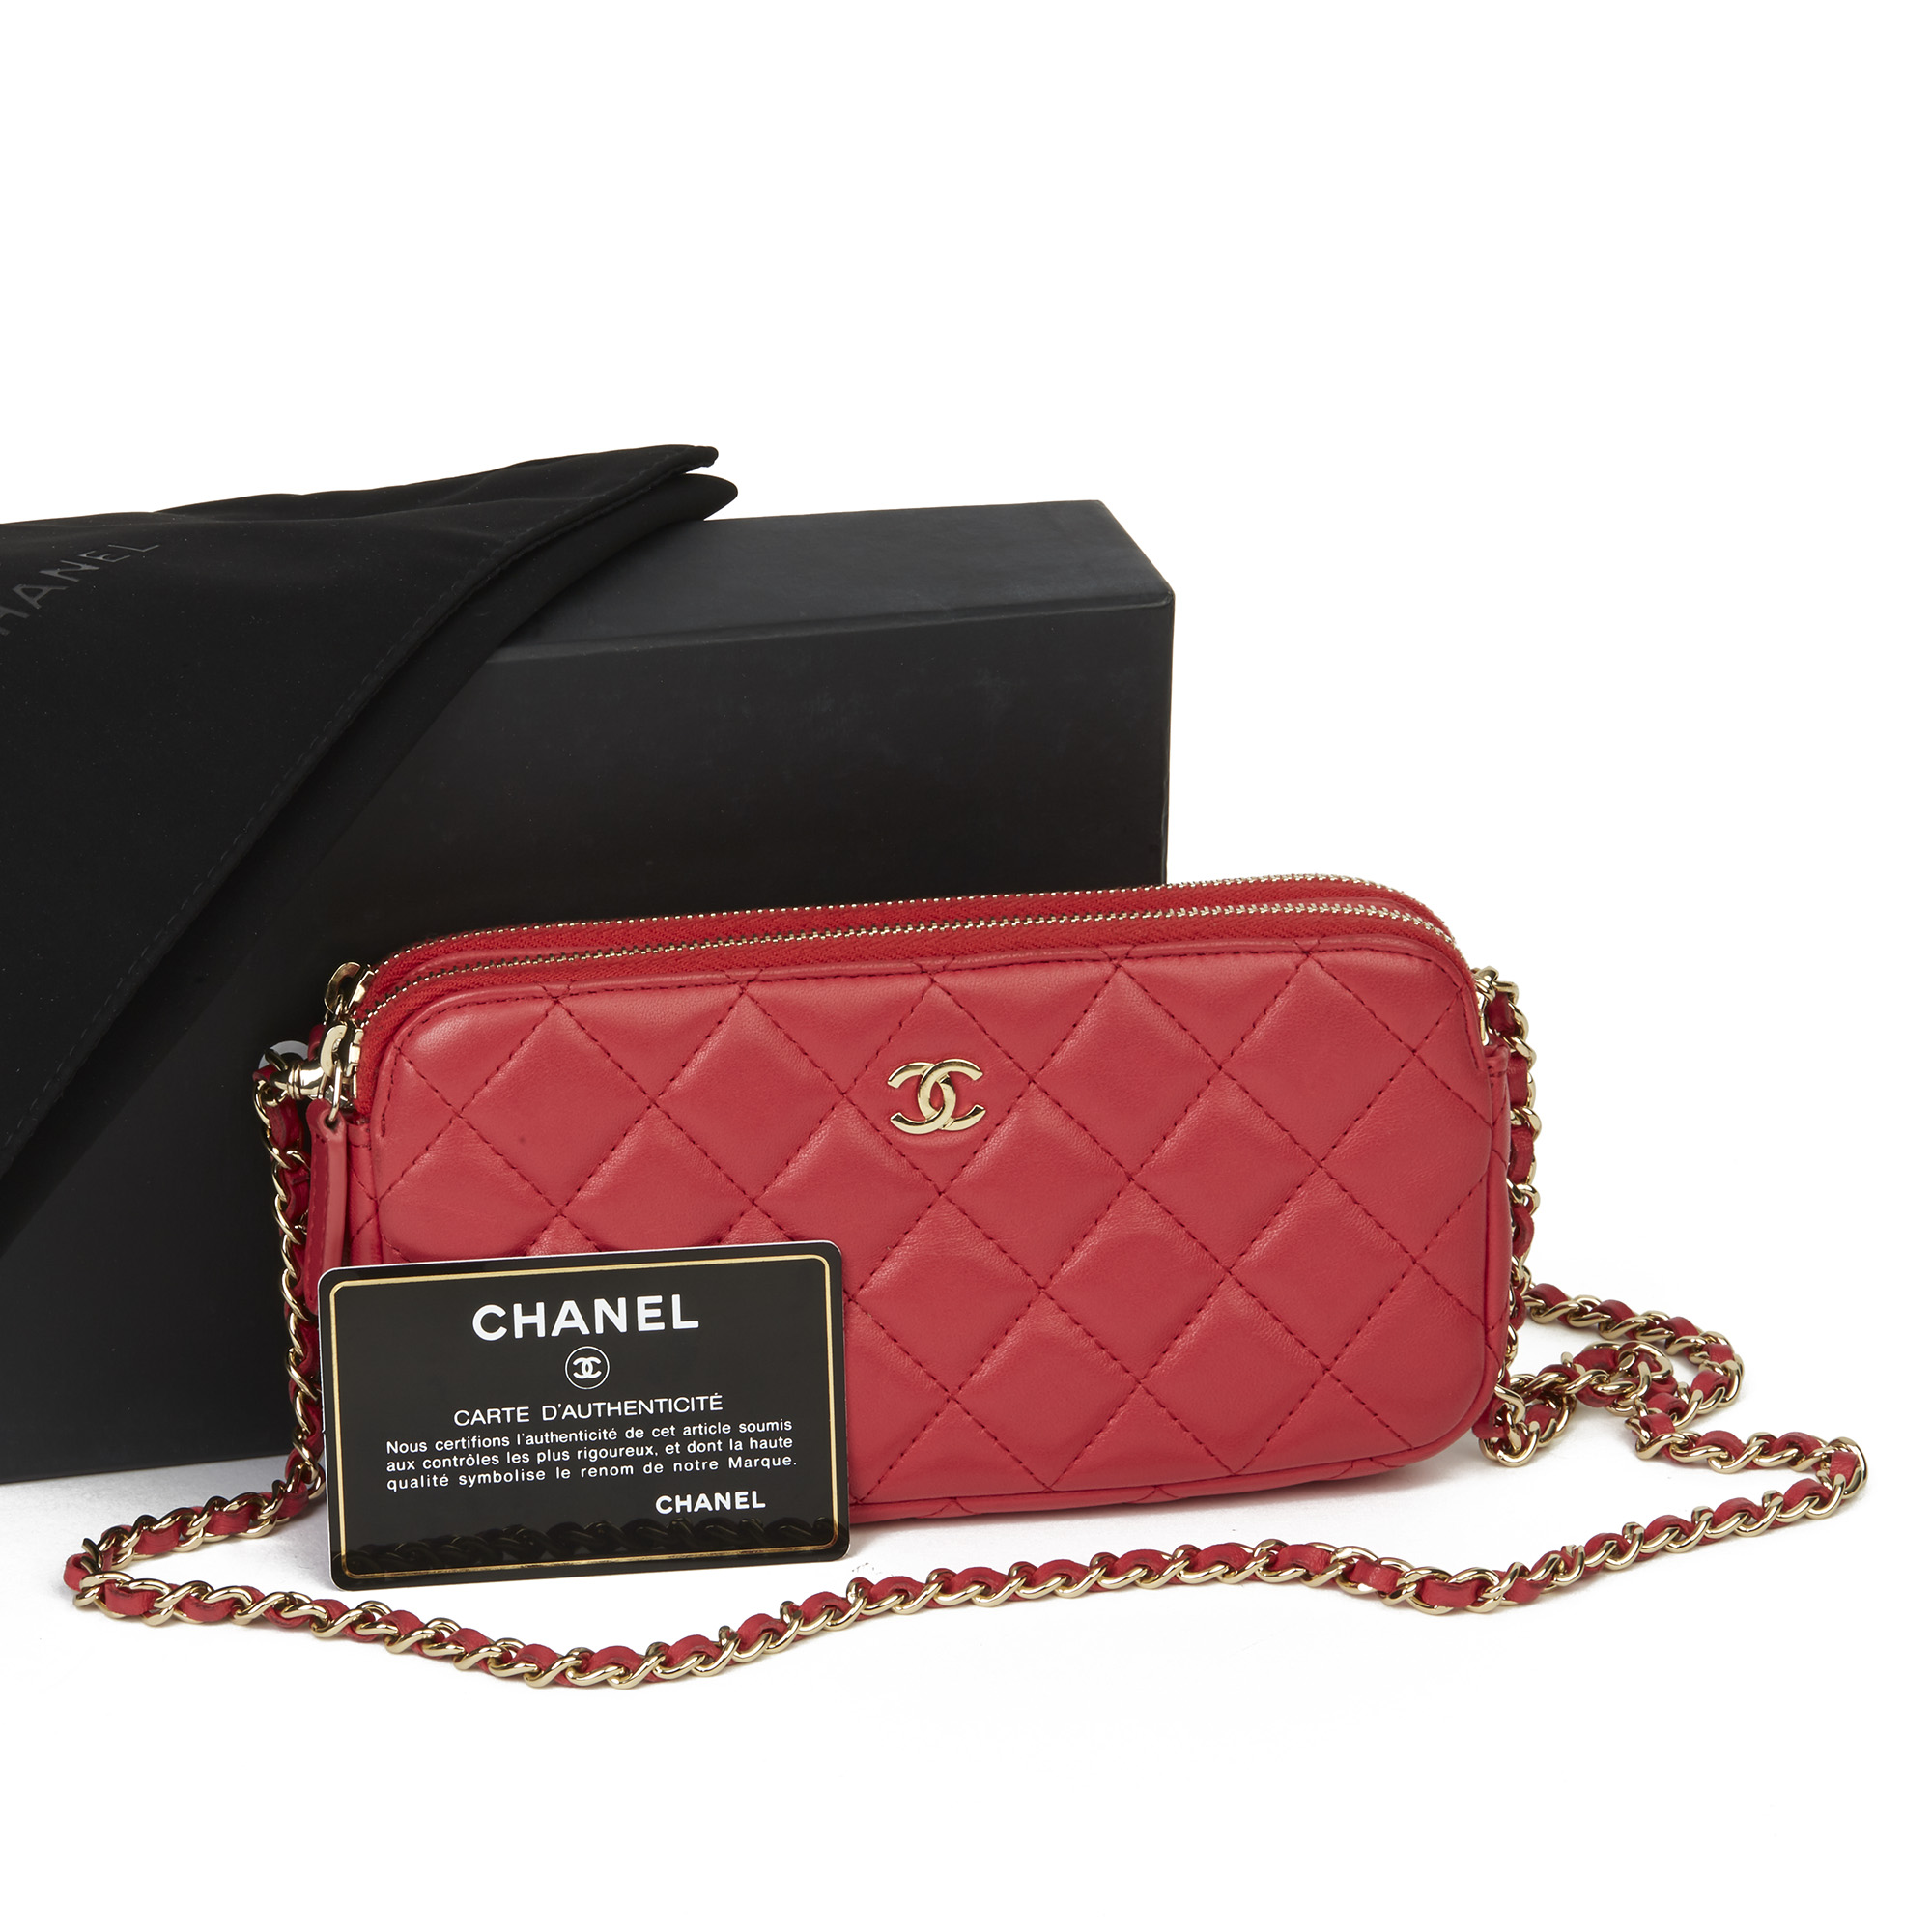 Chanel Red Quilted Lambskin Double Zip Wallet-on-Chain WOC - Image 3 of 11